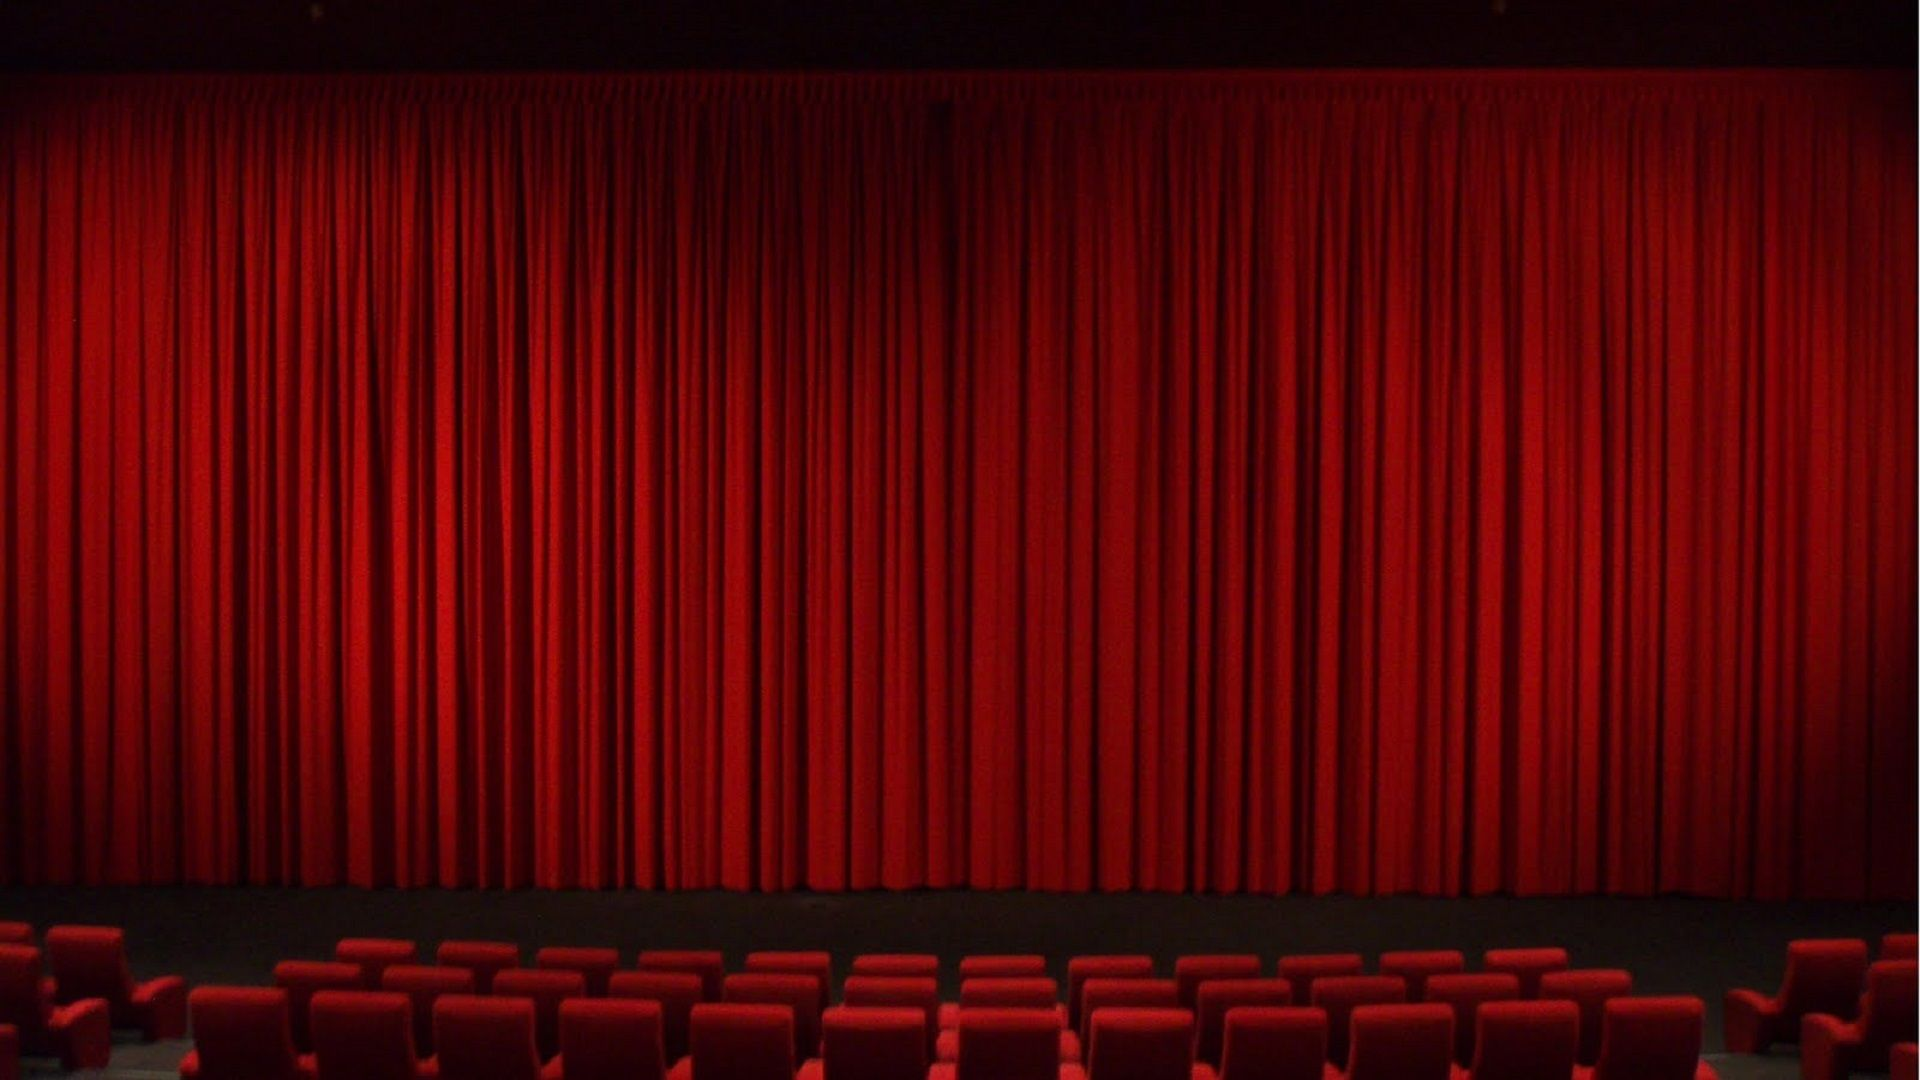 Movie Theater Download Wallpaper